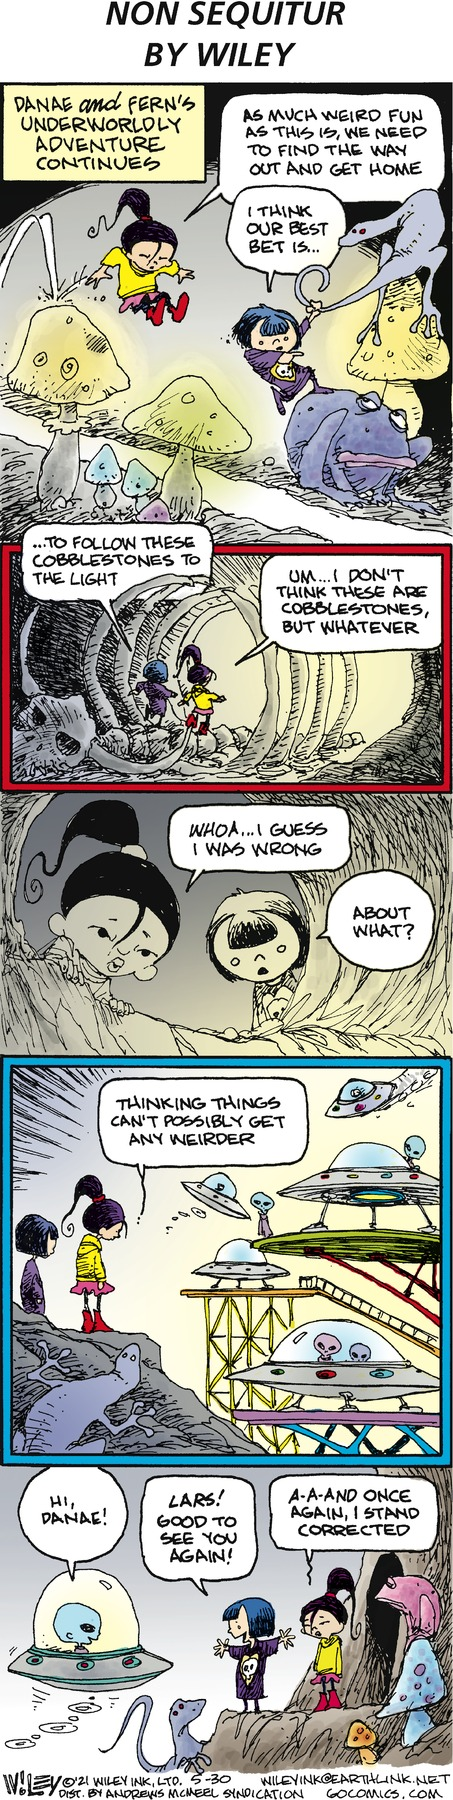 Non Sequitur Comic Strip for May 30, 2021